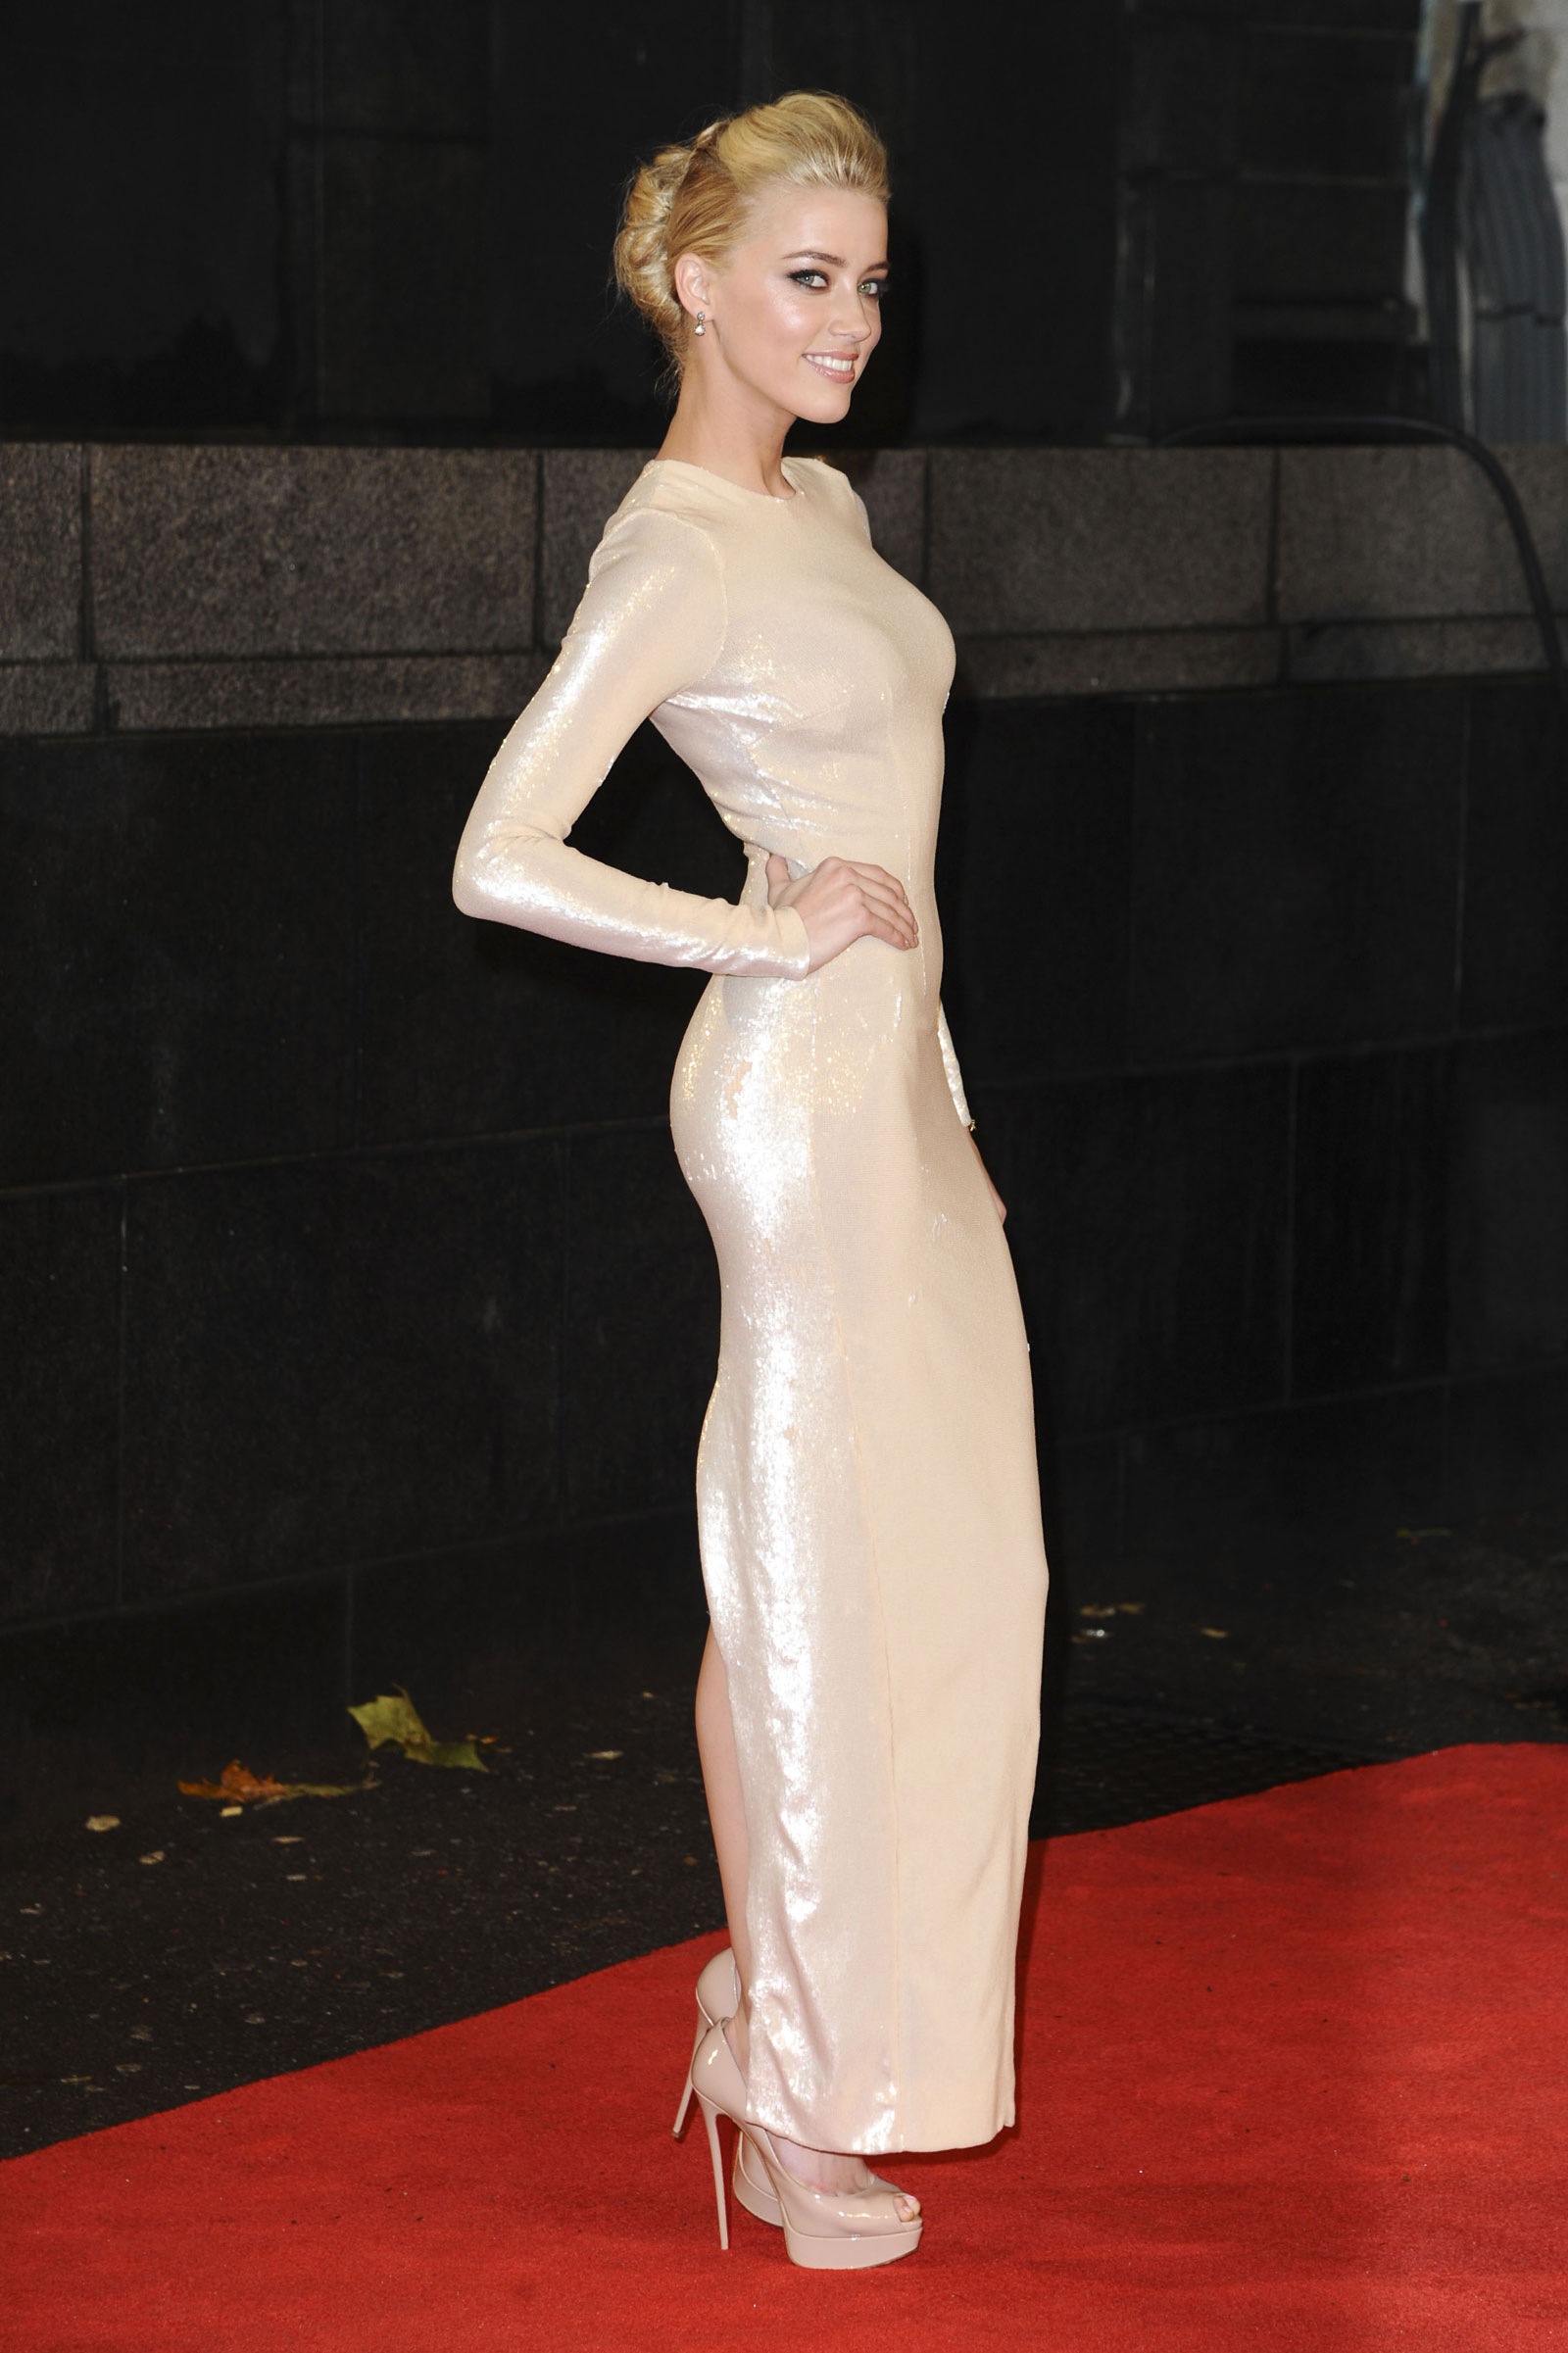 Amber Heard at The Rum Diary Premiere in London (62 Photos ...